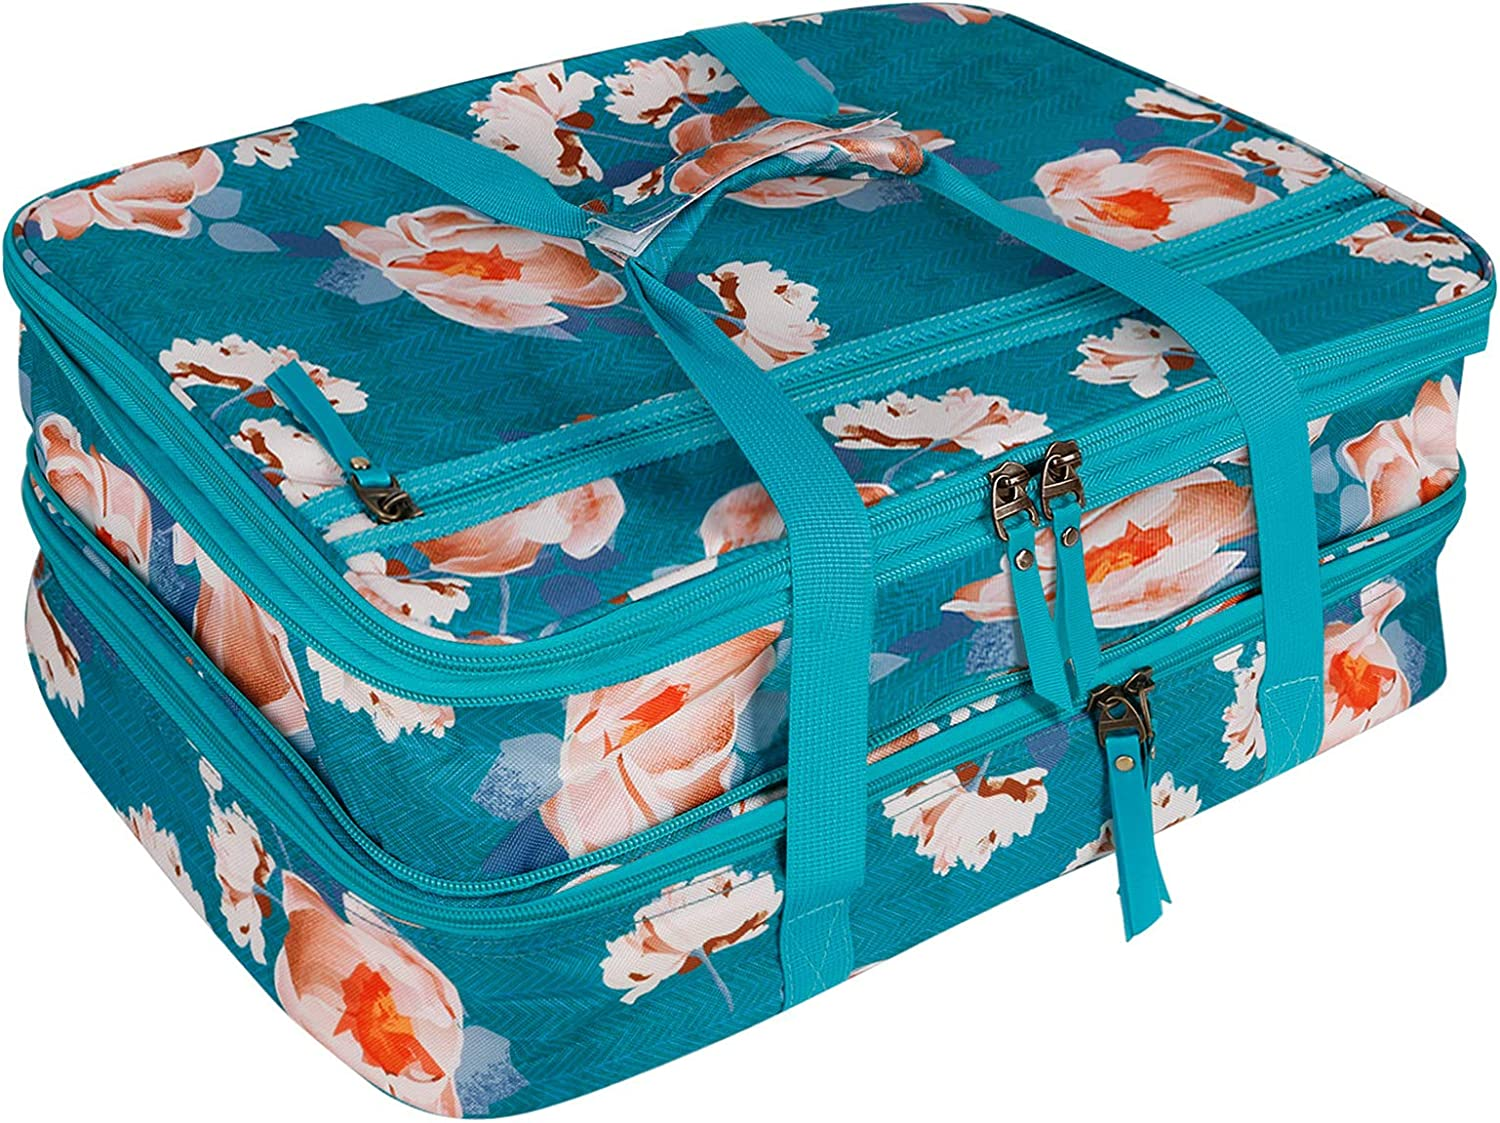 Natur@cho Double Insulated Casserole Travel Lunch Carry Bag, Expandable Thermal Food Lasagna Lugge Tote Carrier for Potluck Parties, Picnic, Beach Cookout Fits 9 x 13 Inches Casserole Dish